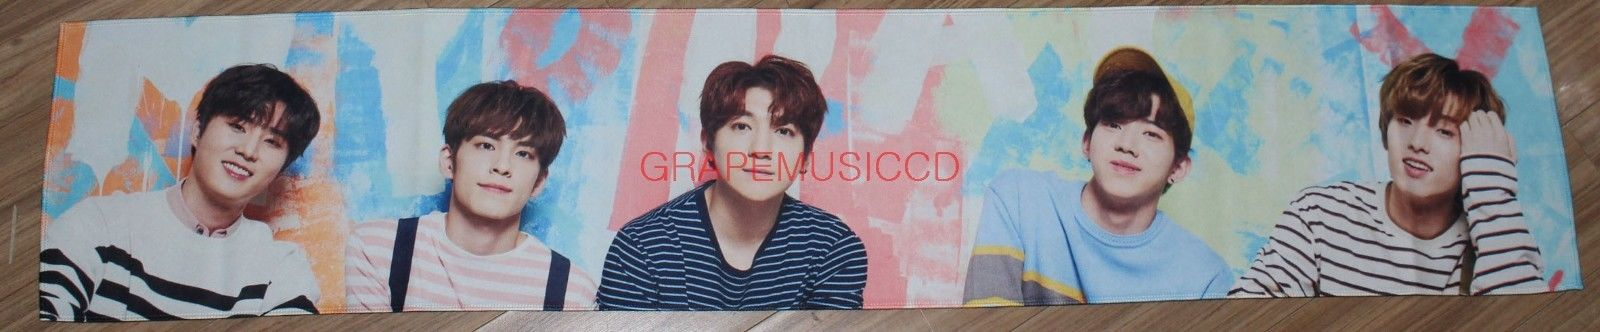 DAY6 EVERY DAY6 FINALE CONCERT THE BEST MOMENTS GOODS PHOTO